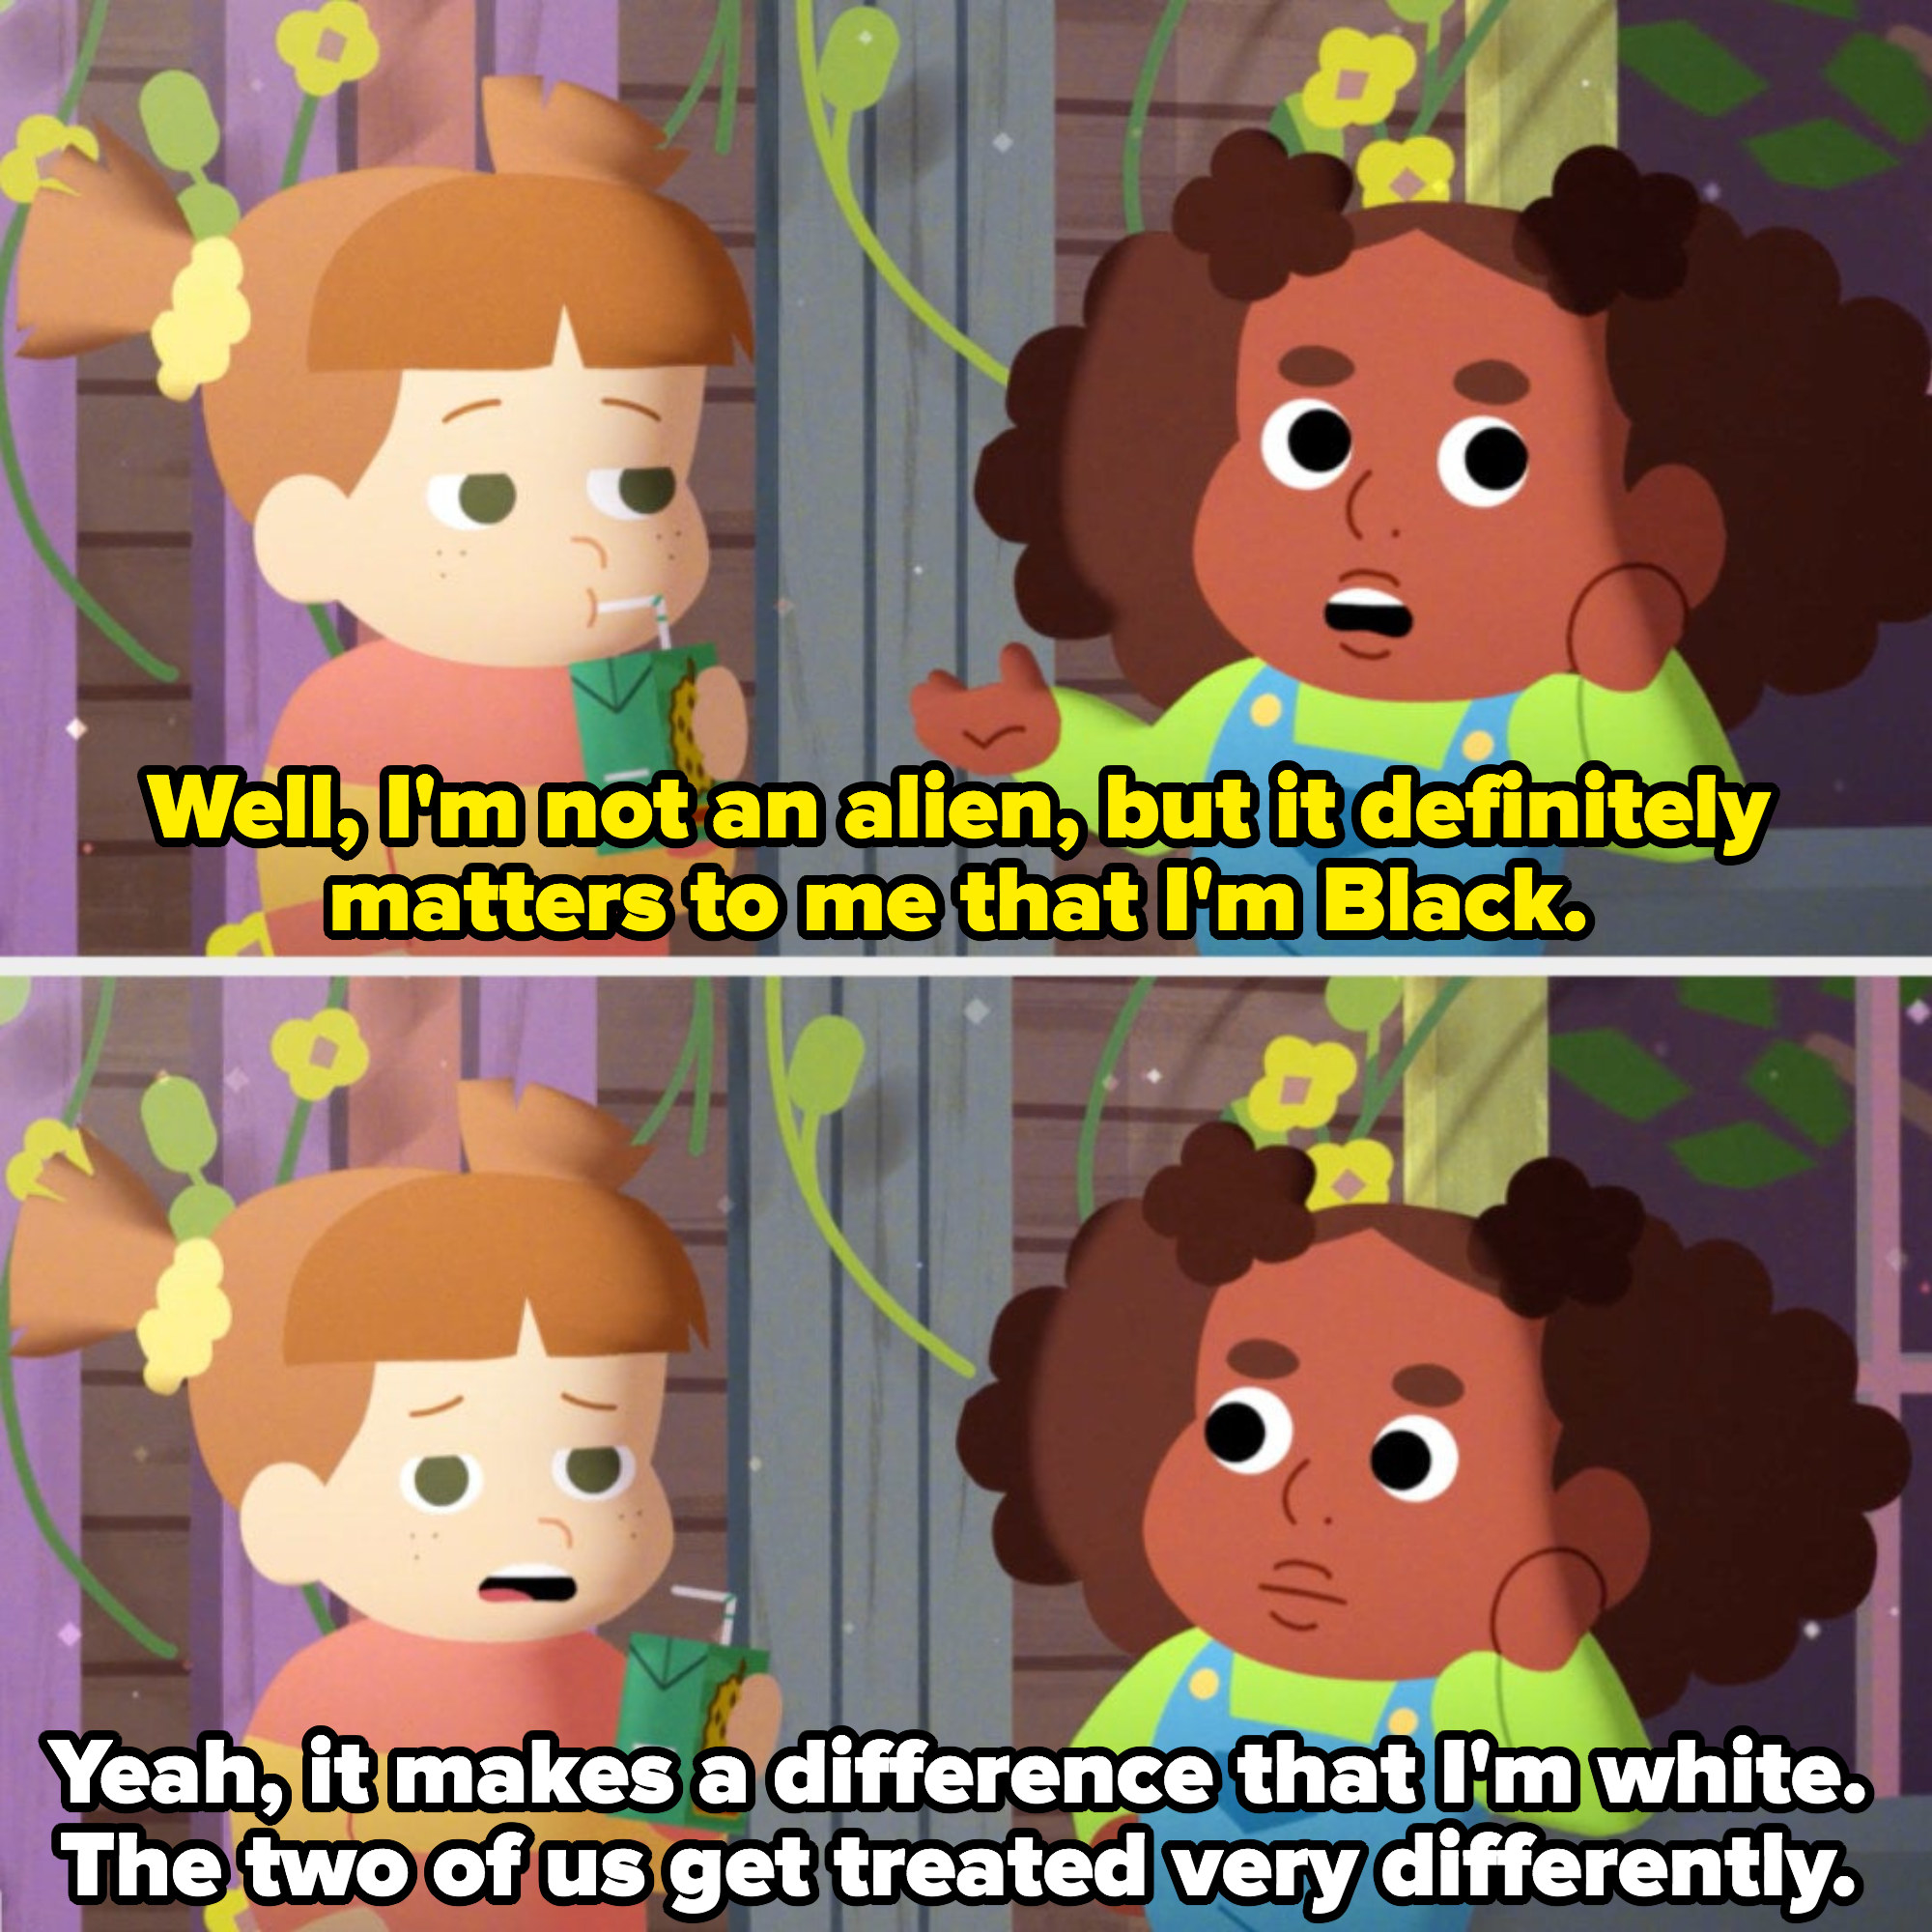 """one child says """"it matters to me that i'm black"""" and the other says """"the two of us get treated very differently"""""""